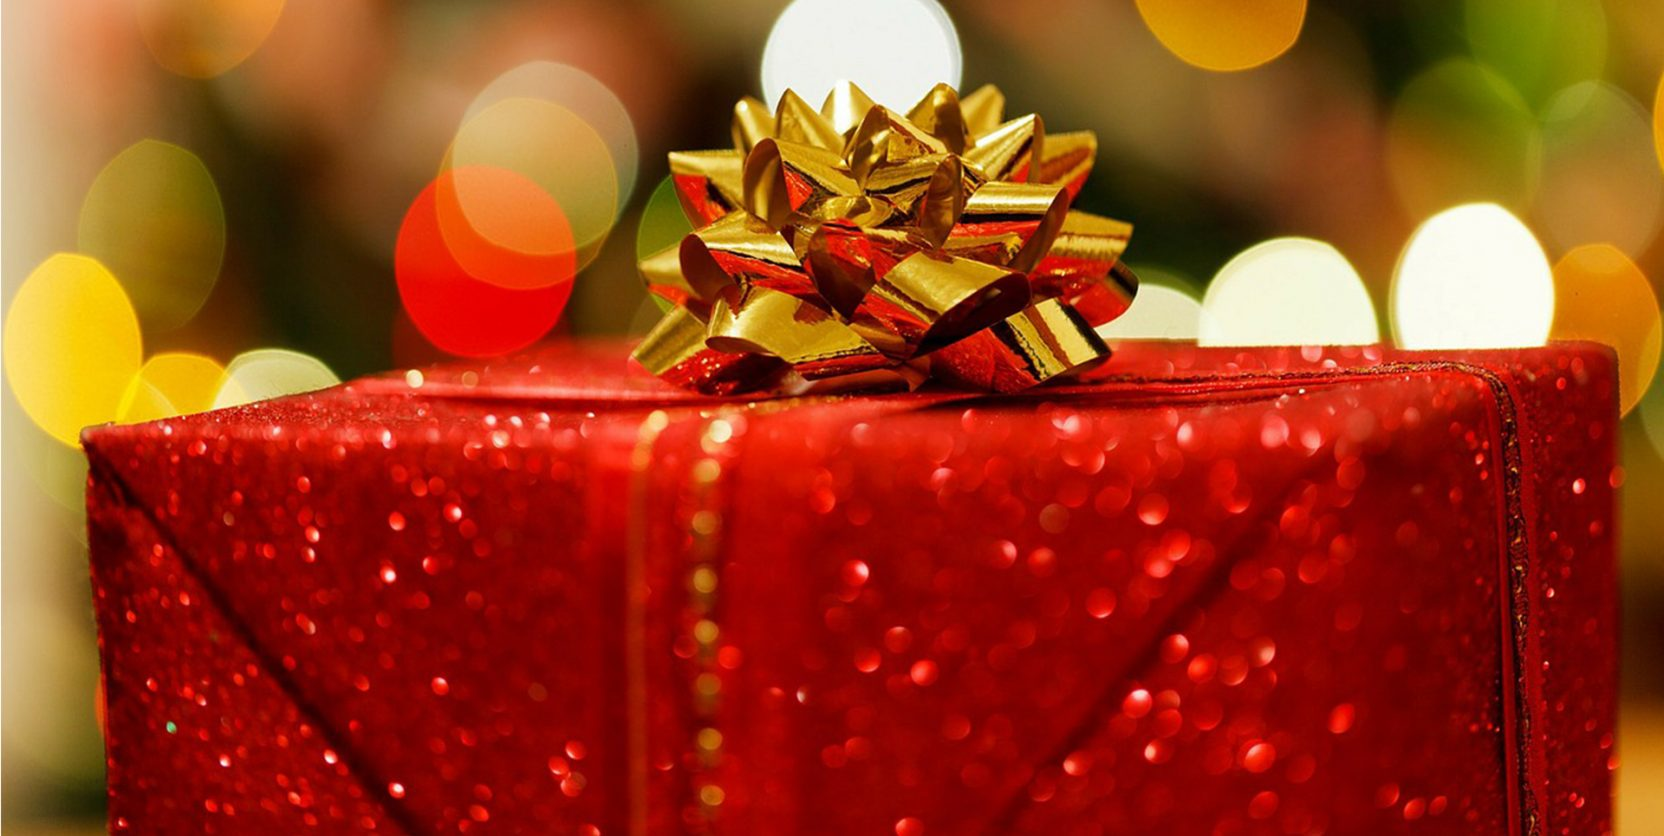 Exciting Christmas Gifts - The 2018 Guide